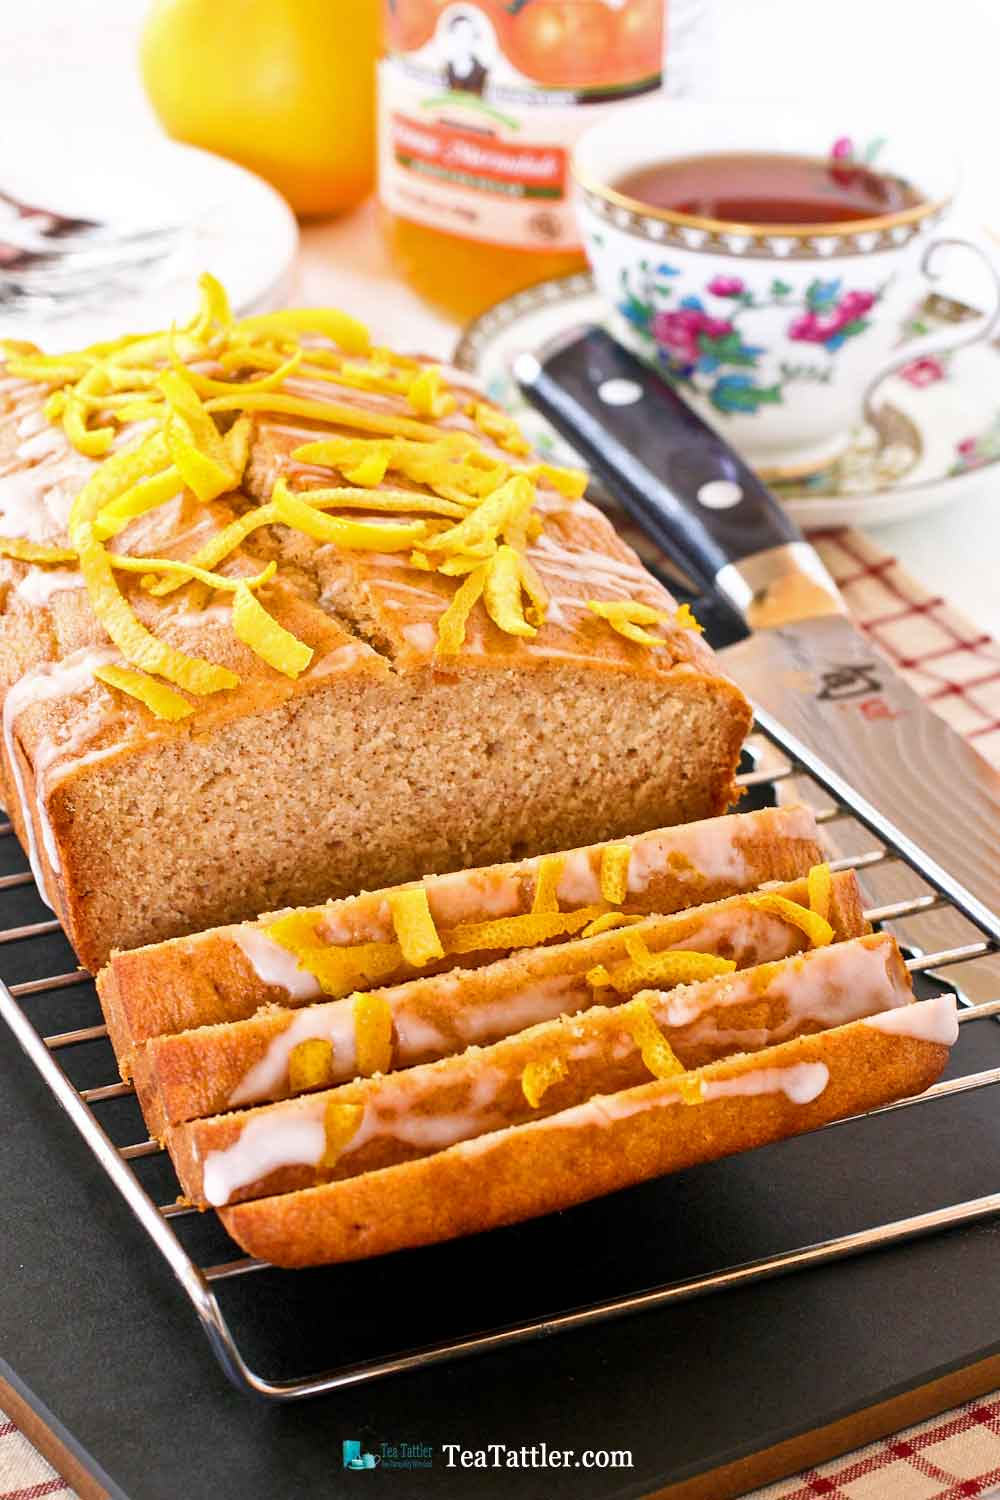 Marmalade Tea Cake - a fragrant and fine textured cake perfect with a cup of tea. The marmalade gives it a lovely flavor and keeps it moist. | TeaTattler.com #marmaladeteacake #marmaladecake #teacake